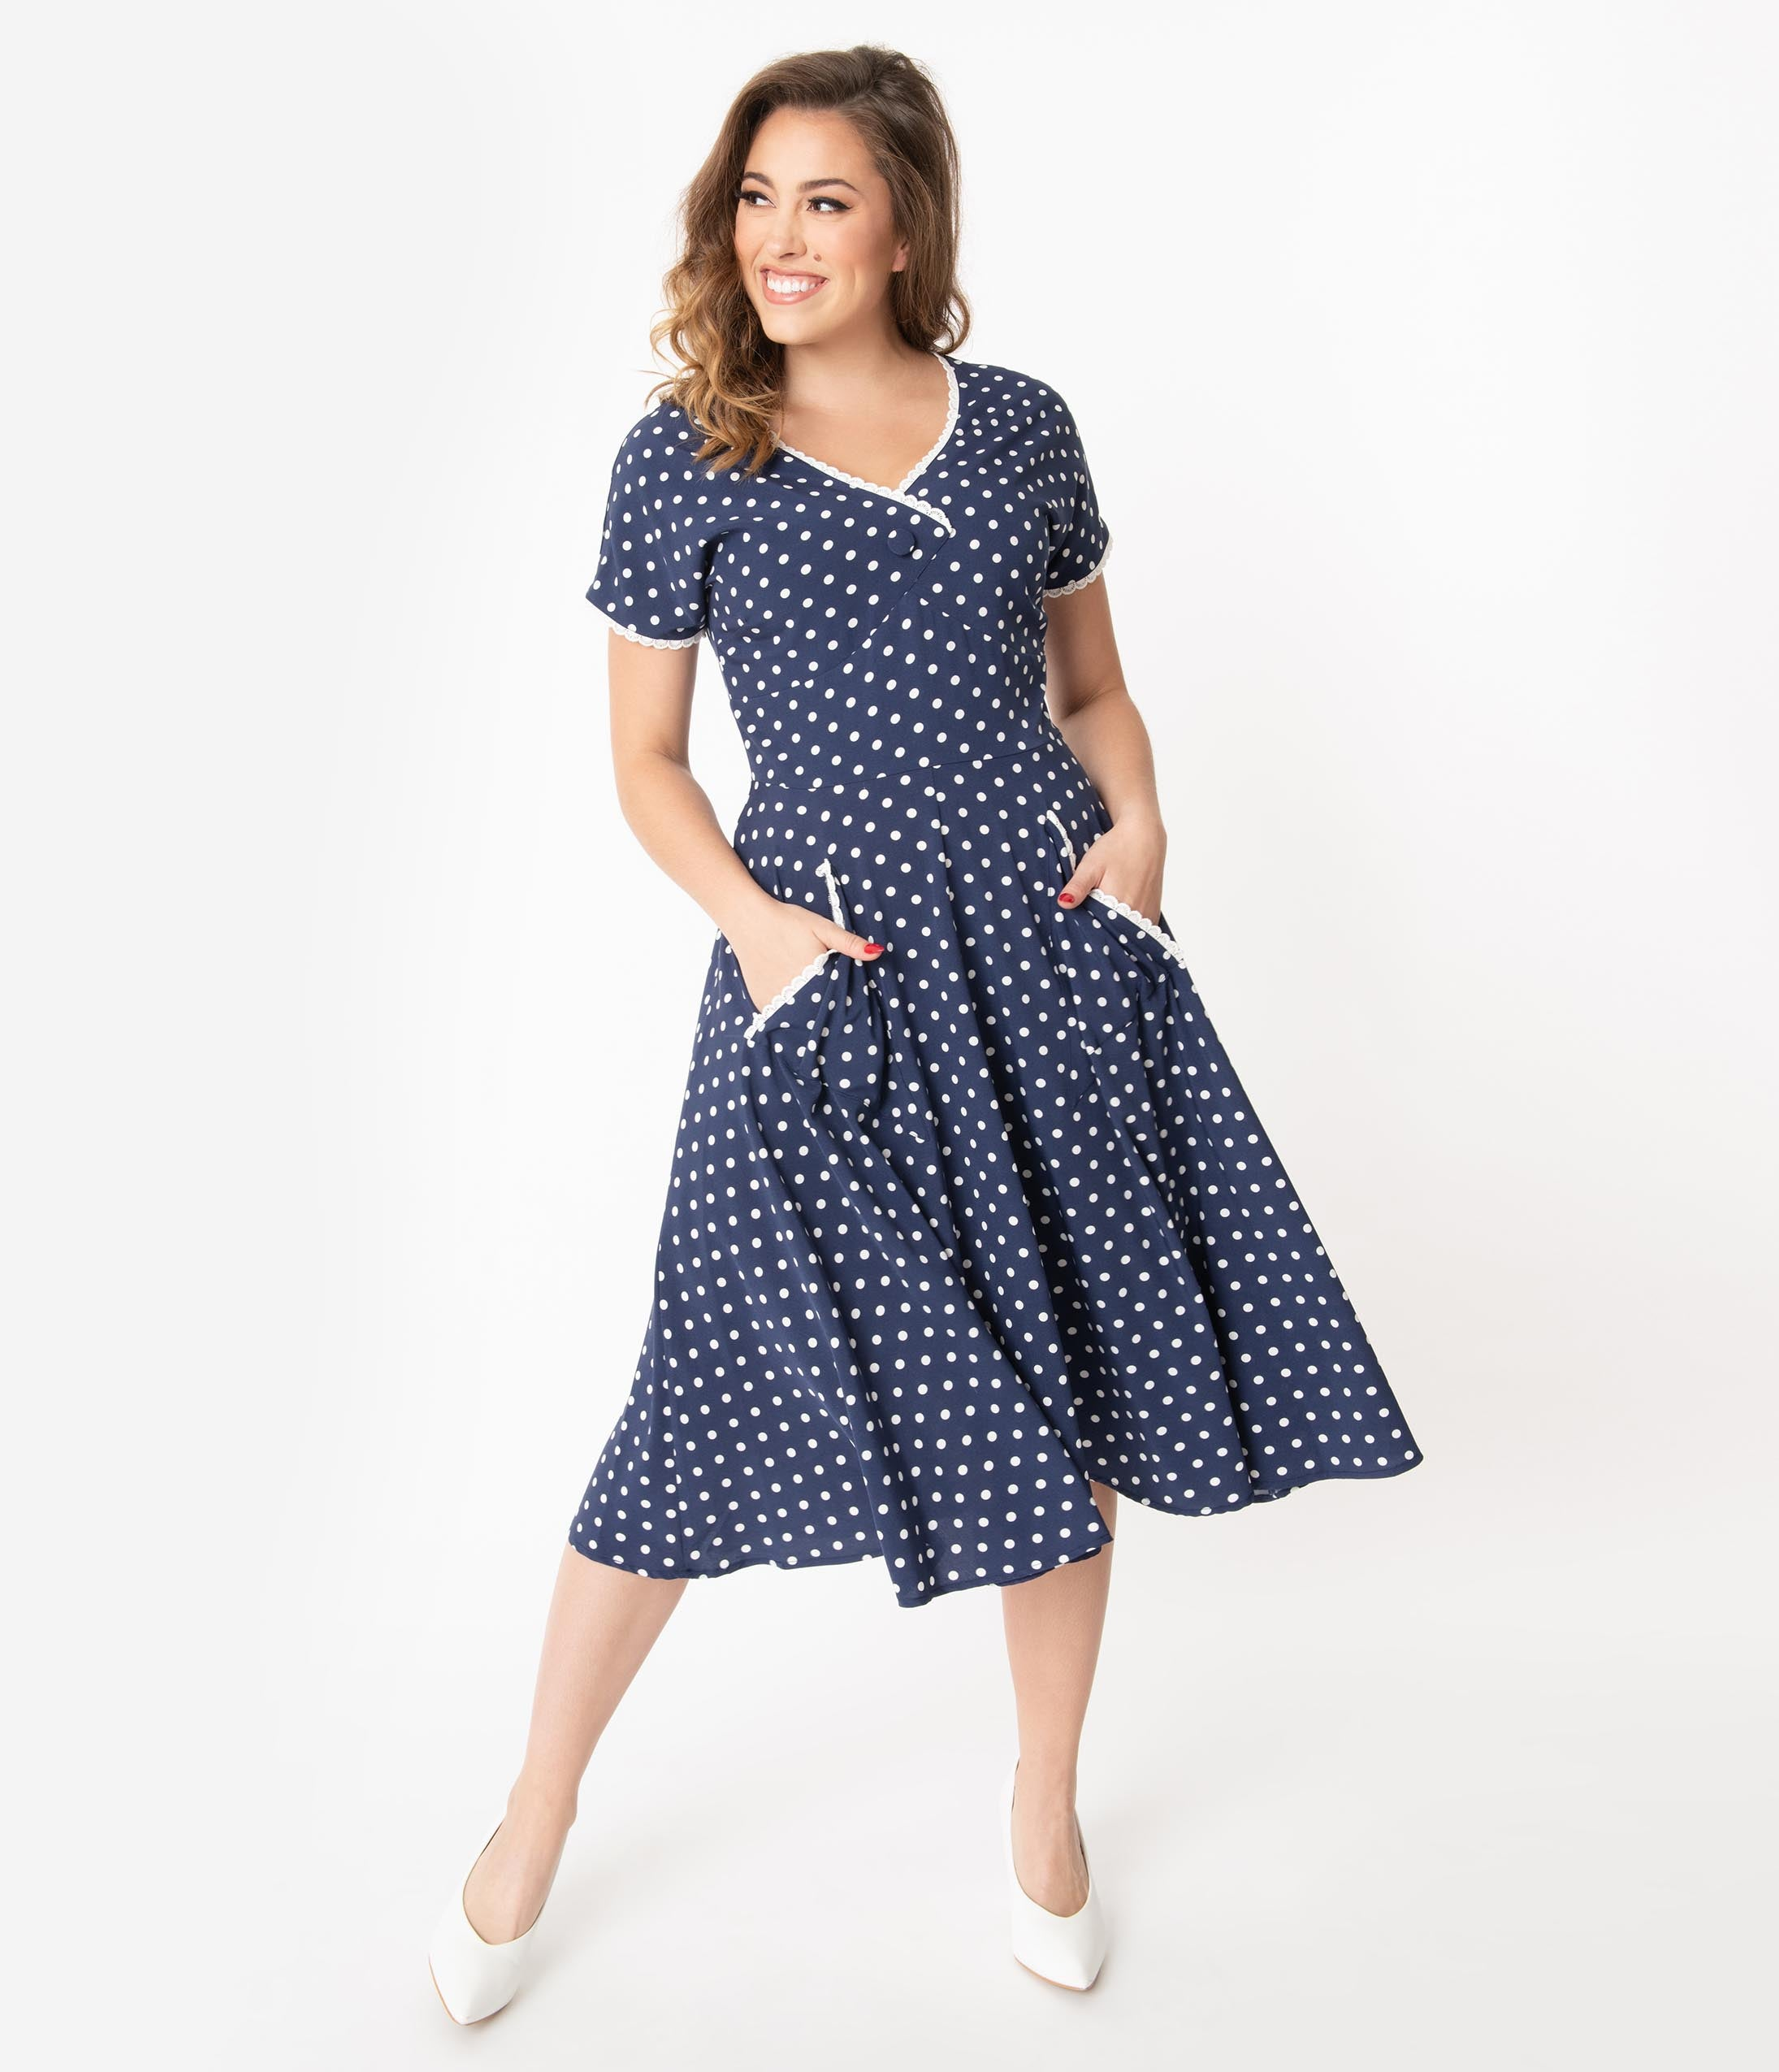 500 Vintage Style Dresses for Sale | Vintage Inspired Dresses Unique Vintage 1950S Navy  White Polka Dot Goldie Swing Dress $68.00 AT vintagedancer.com